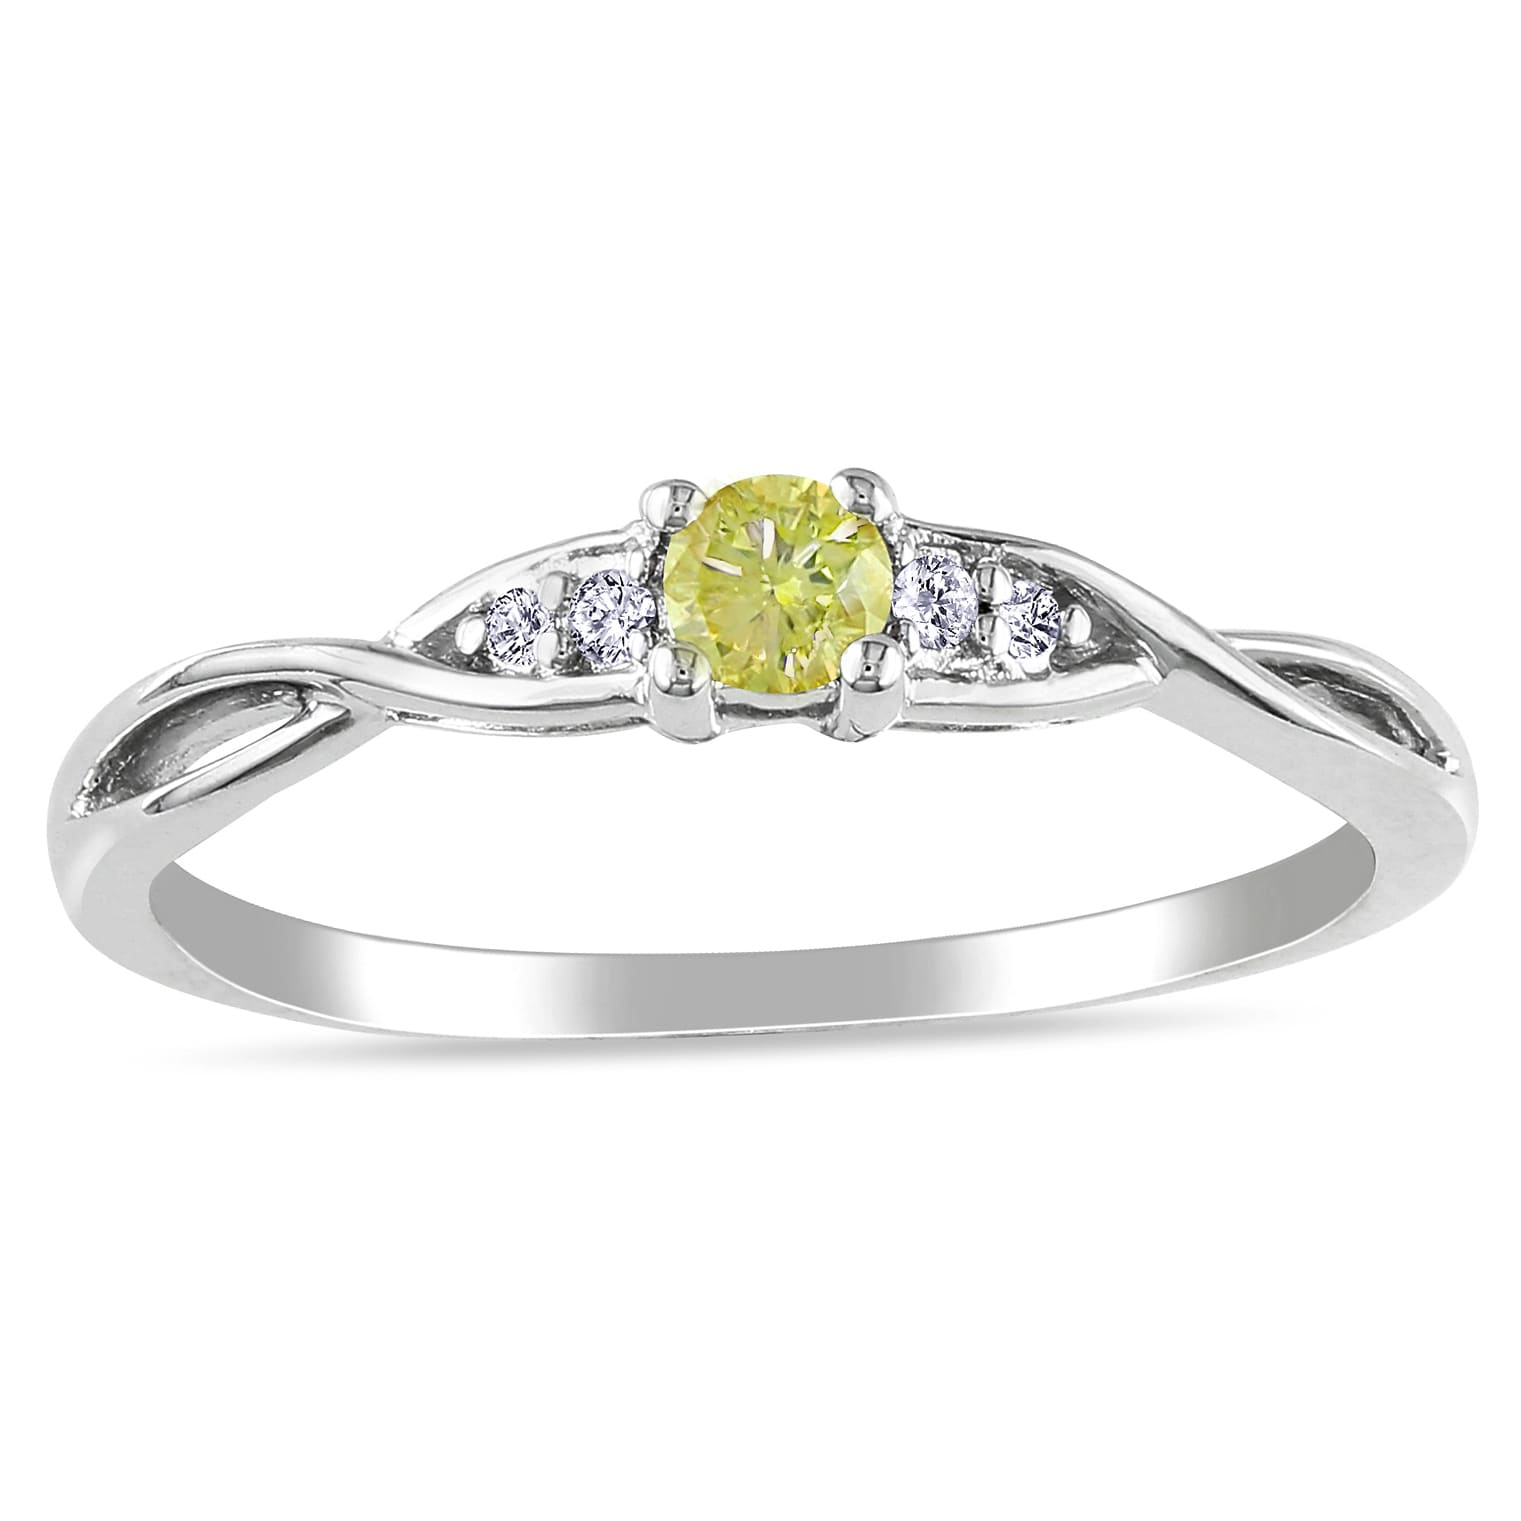 Miadora Silver 1/6ct TDW Yellow and White Diamond Ring (G-H, I1-I2)